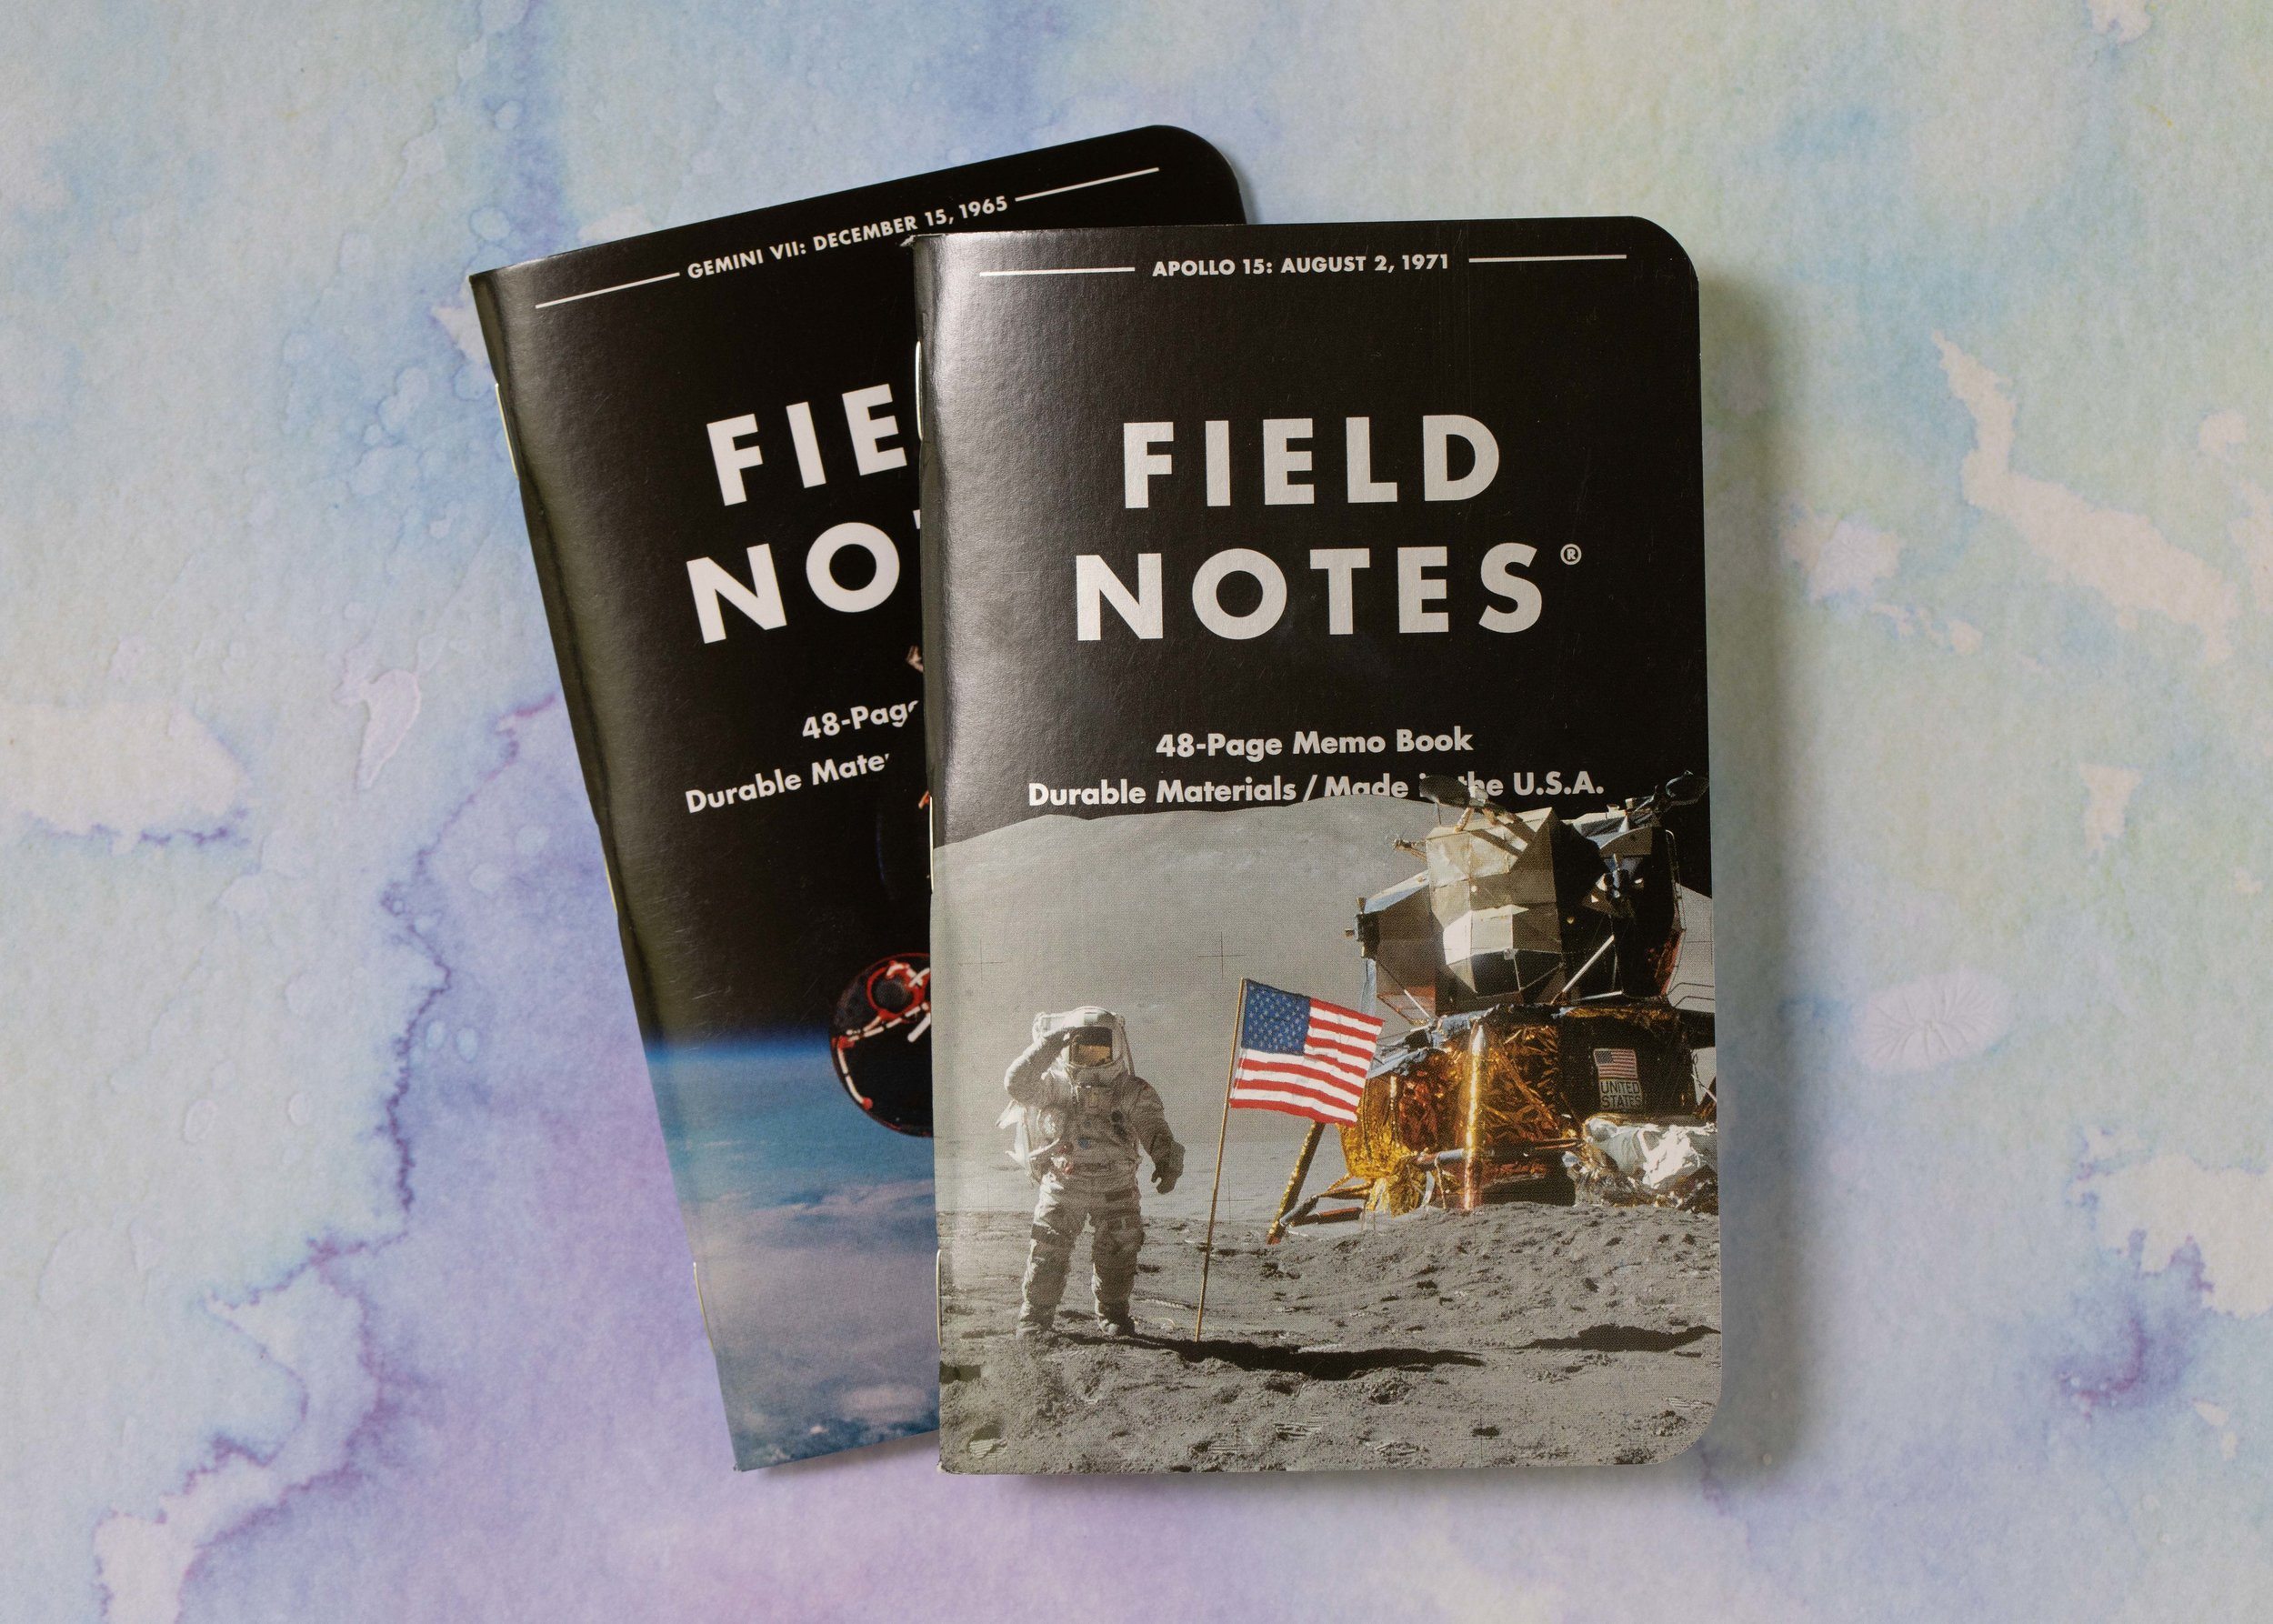 As part of the open house, Paperquirks did a raffle, and I won a set of the new Field Notes release. My husband already stole one out of my pack.